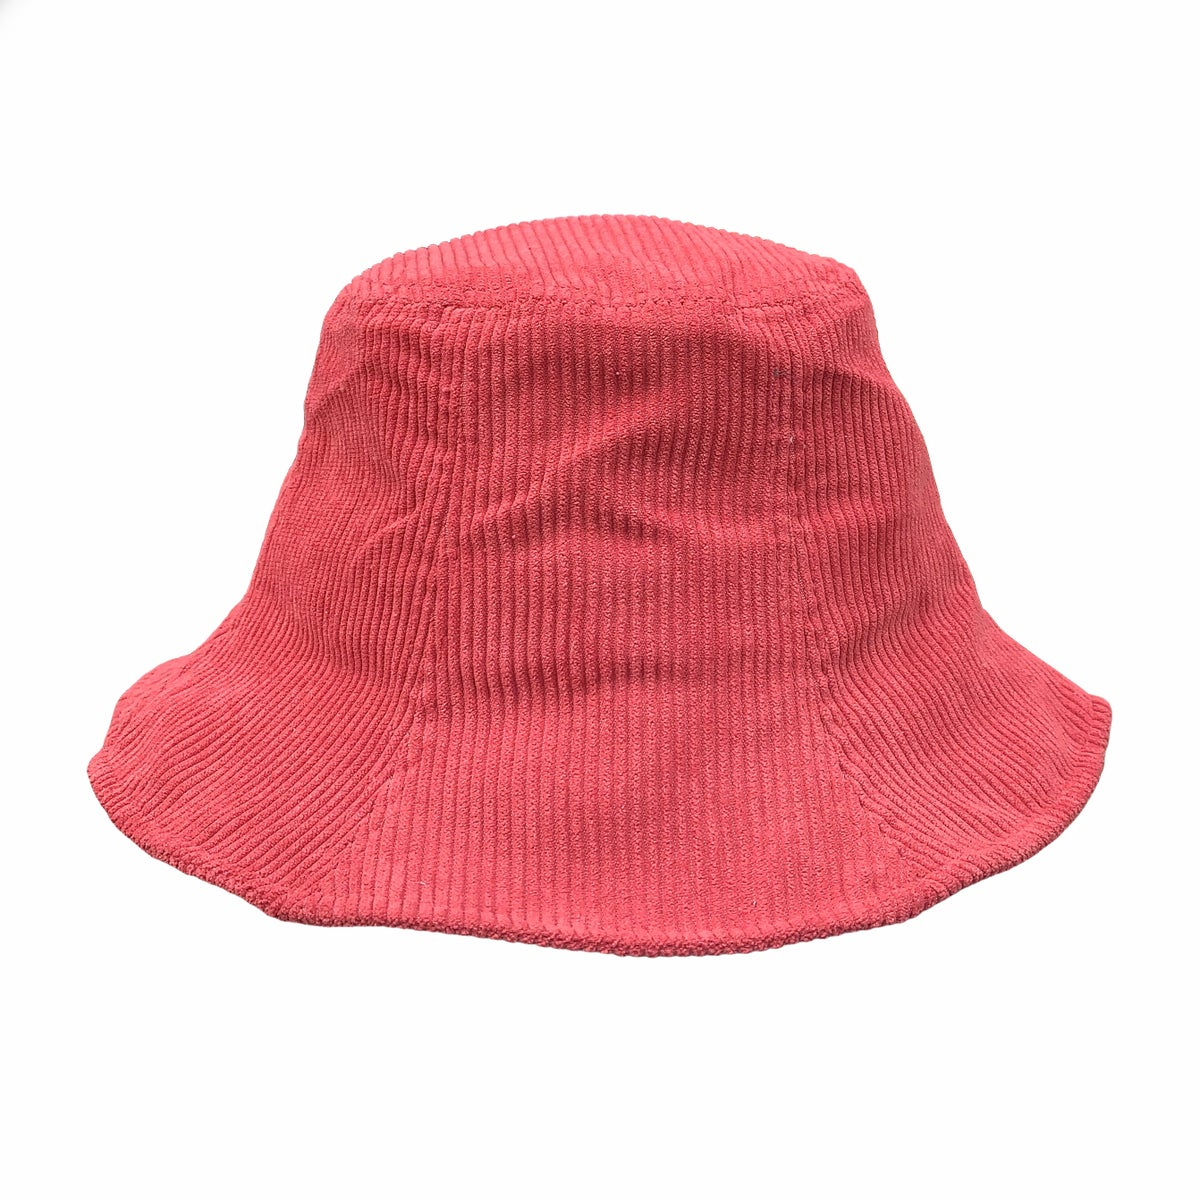 Image of Corduroy Bucket Hat. Coral (was £23 now £18)